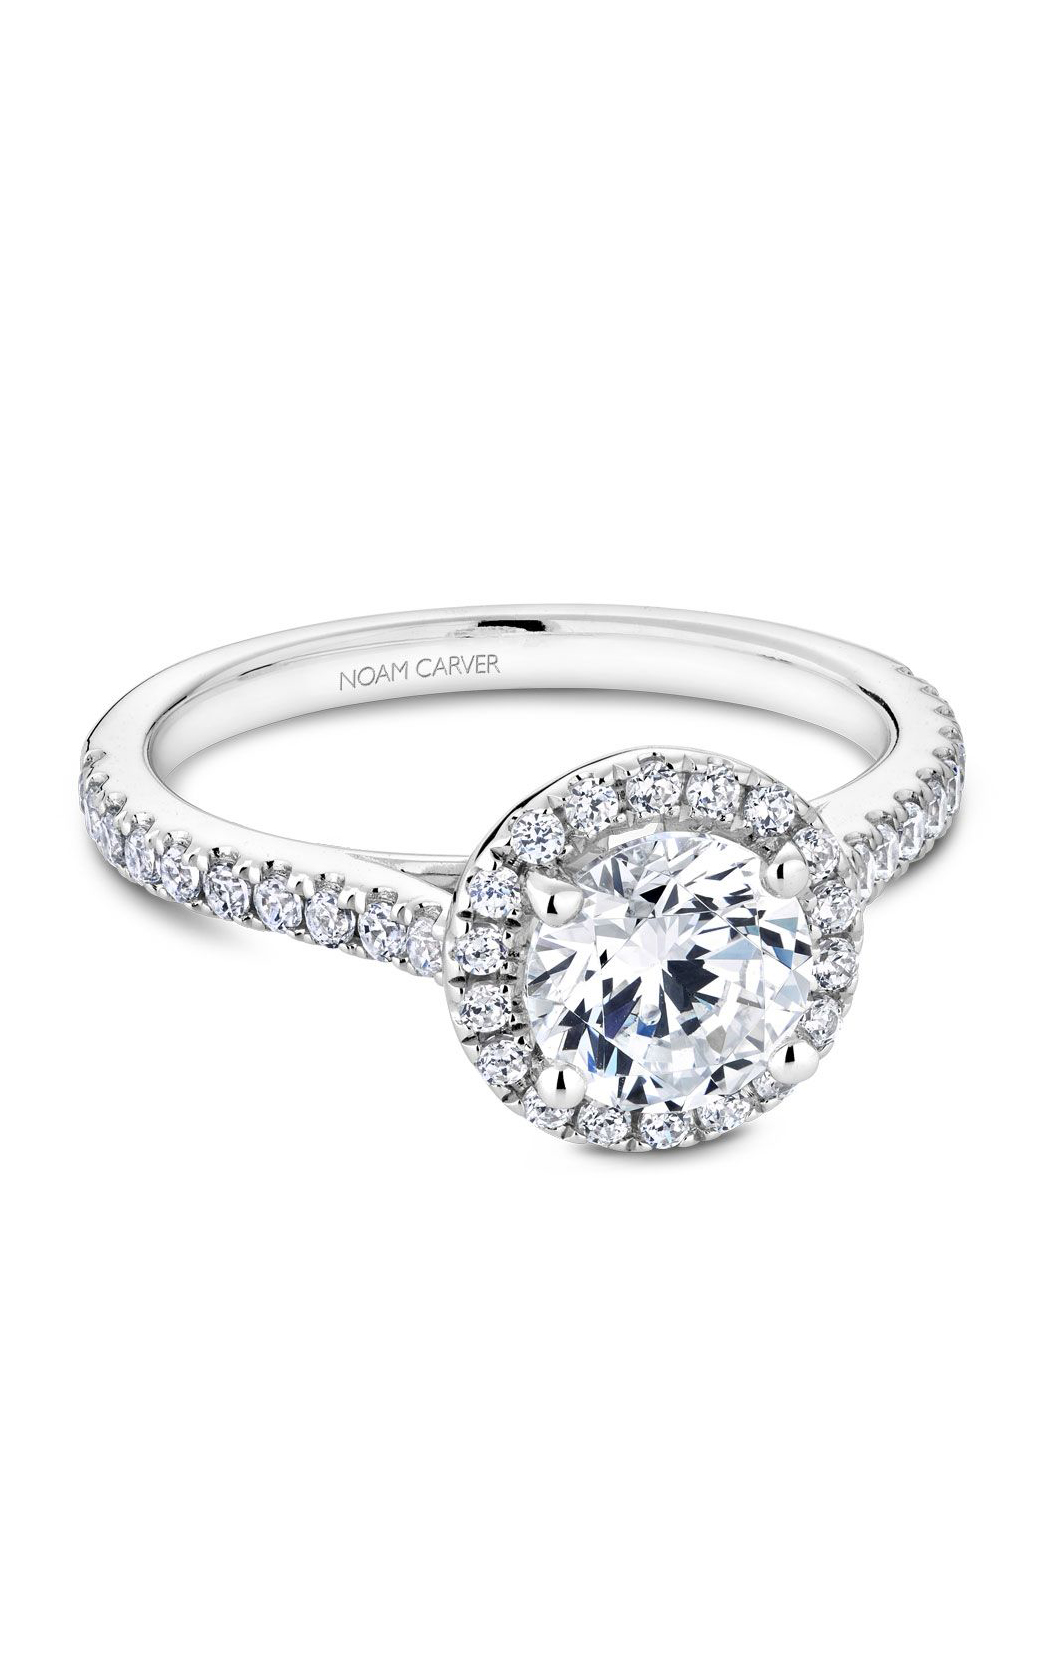 Noam Carver Modern Engagement Ring R050-01A product image